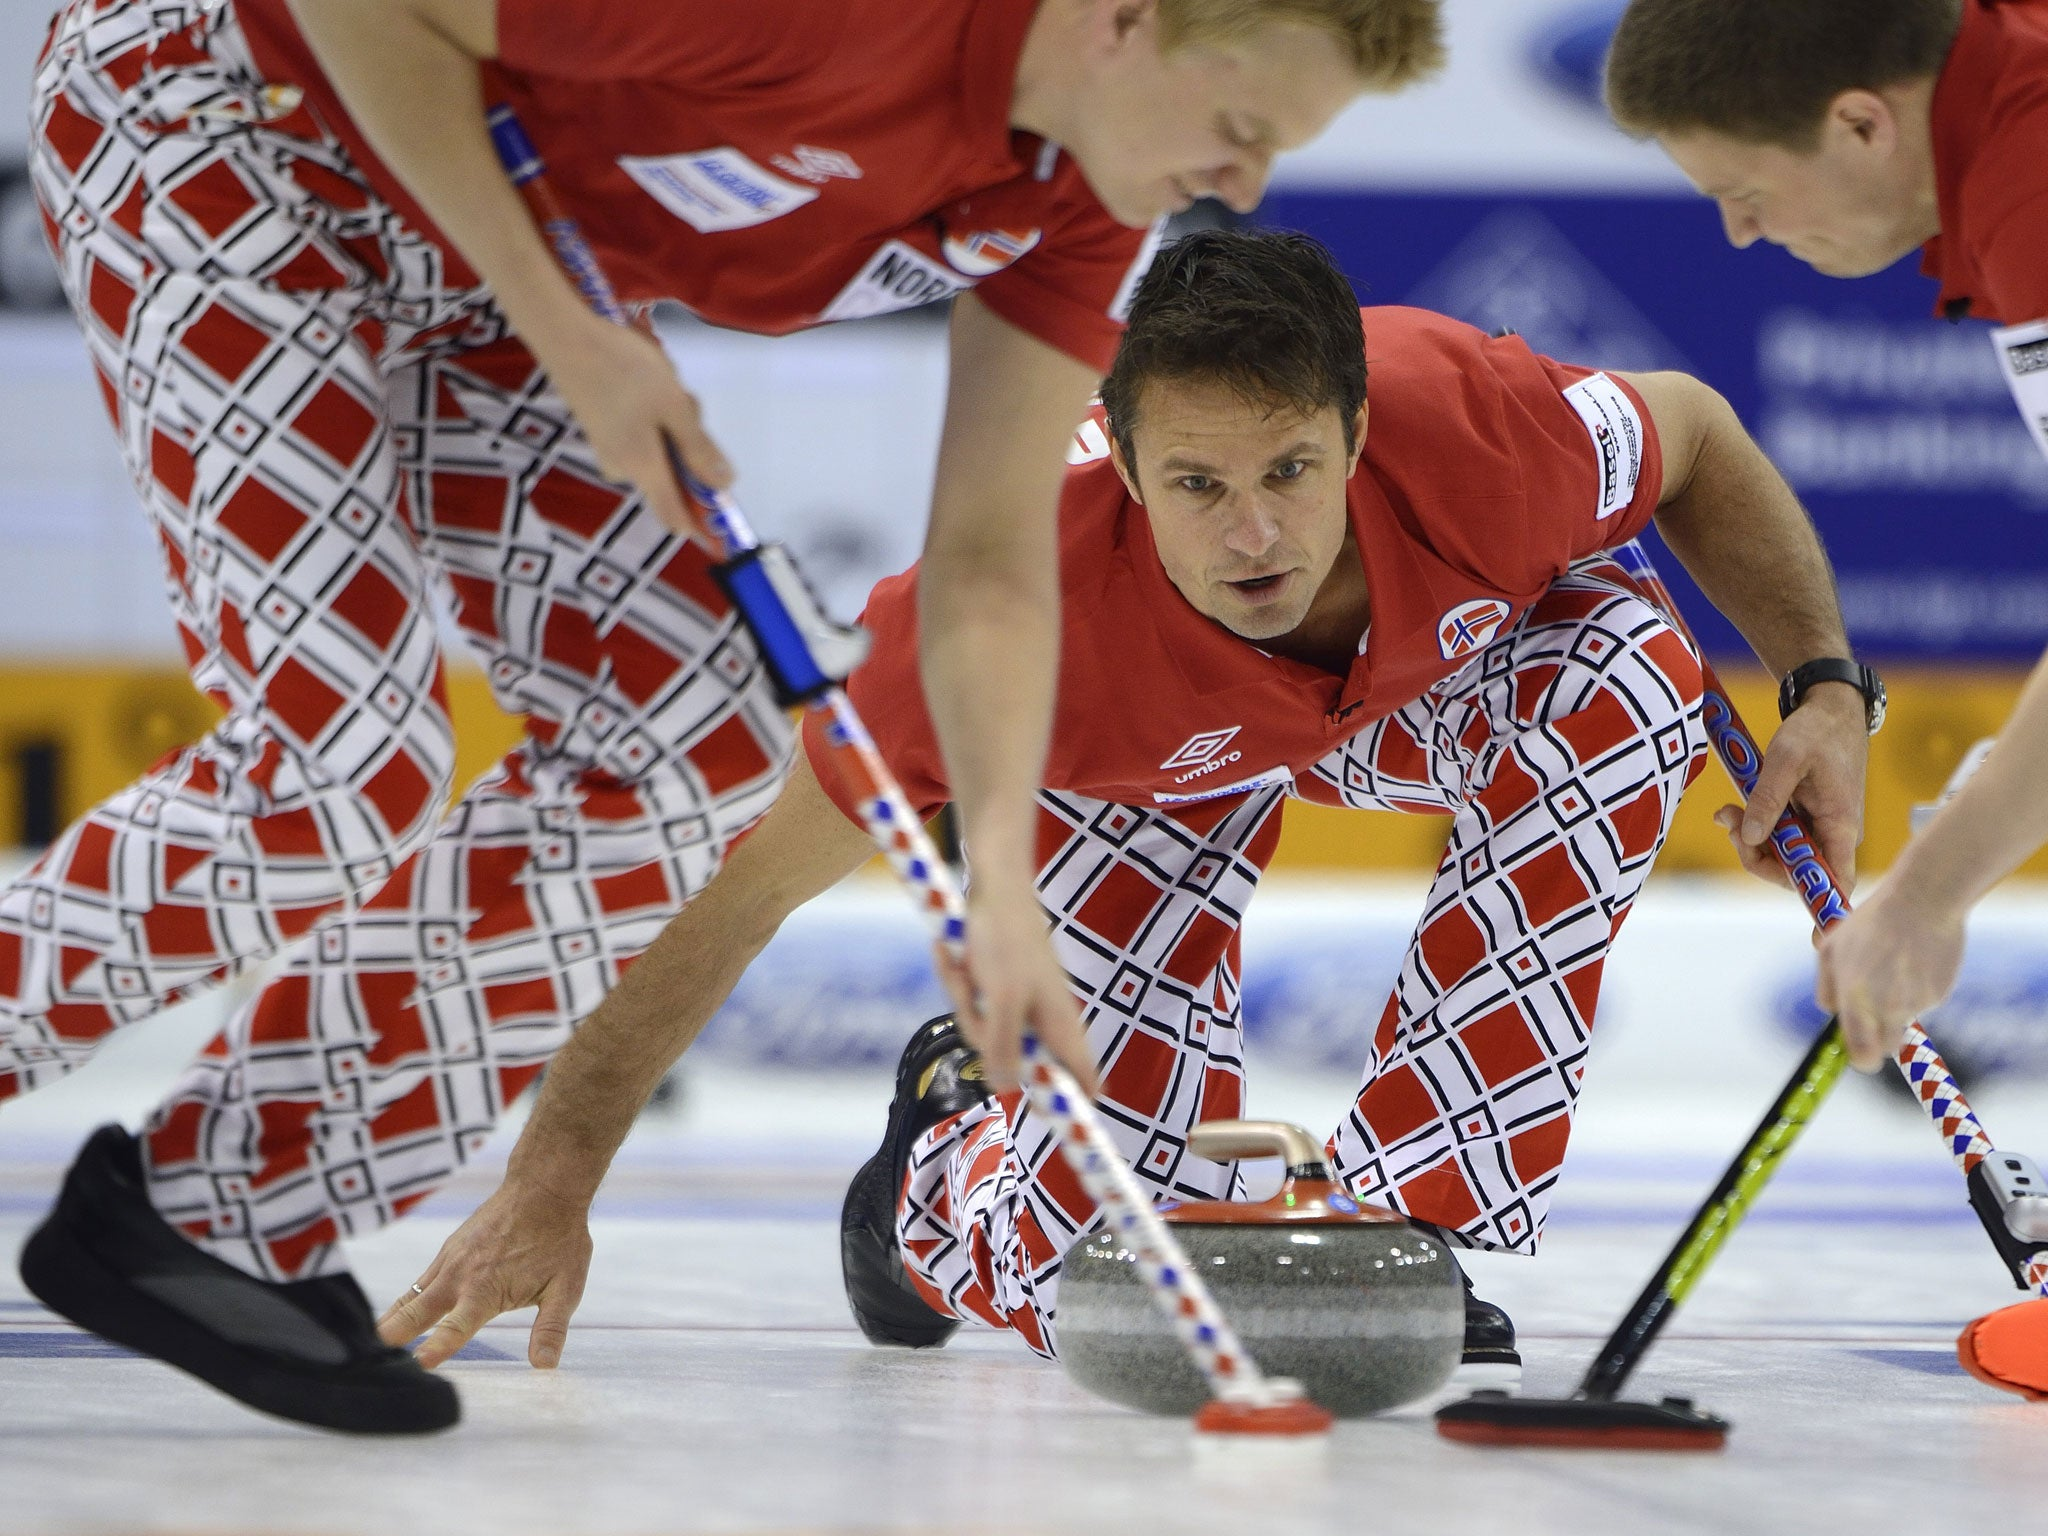 Winter Olympics 2014: Norway curling team unveils much